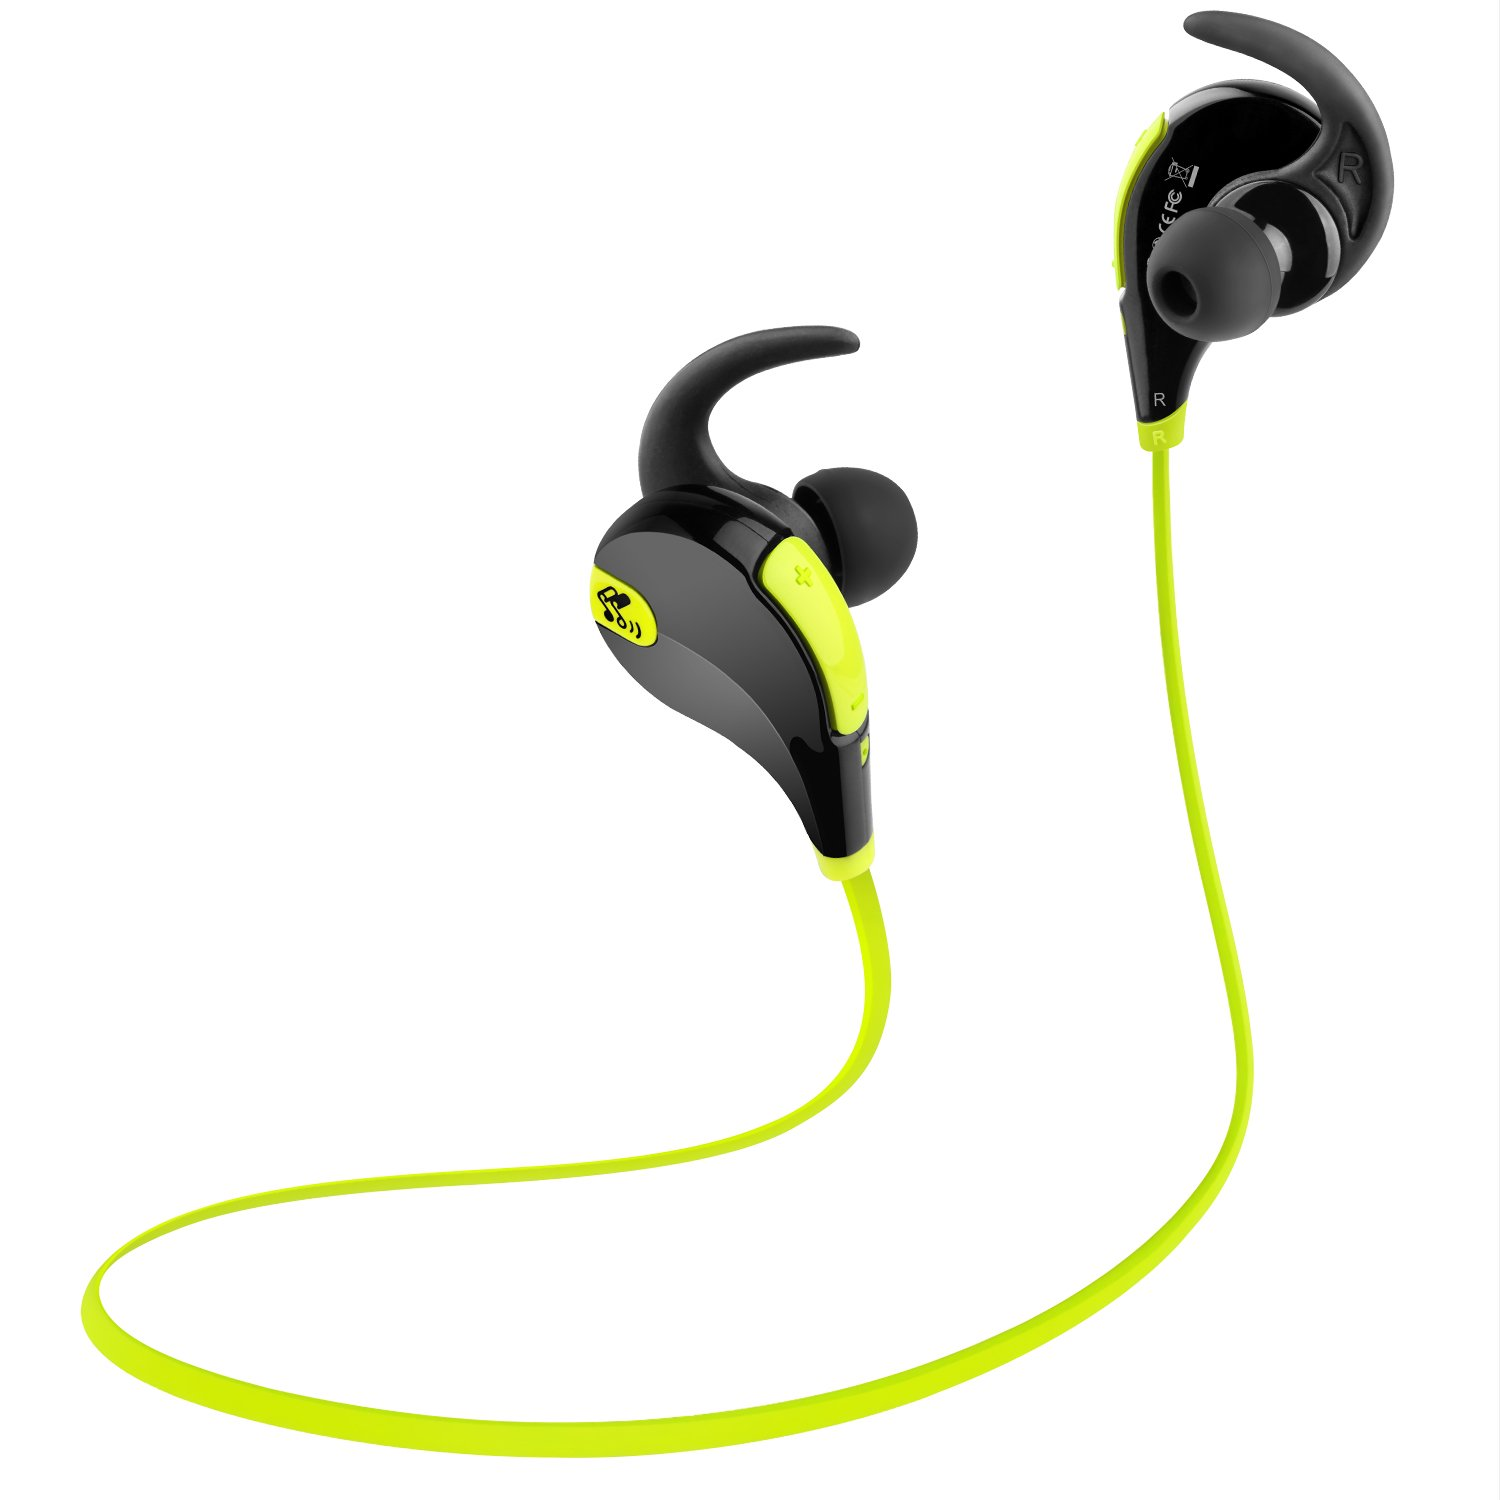 Iphone Wireless Earbuds For Running Wire Center Led Backlighting Solution With Lm3430 And Lm3432 Circuit Diagram Soundpeats Bluetooth Headphones Stereo Earphones Rh Ebay Com Best 7